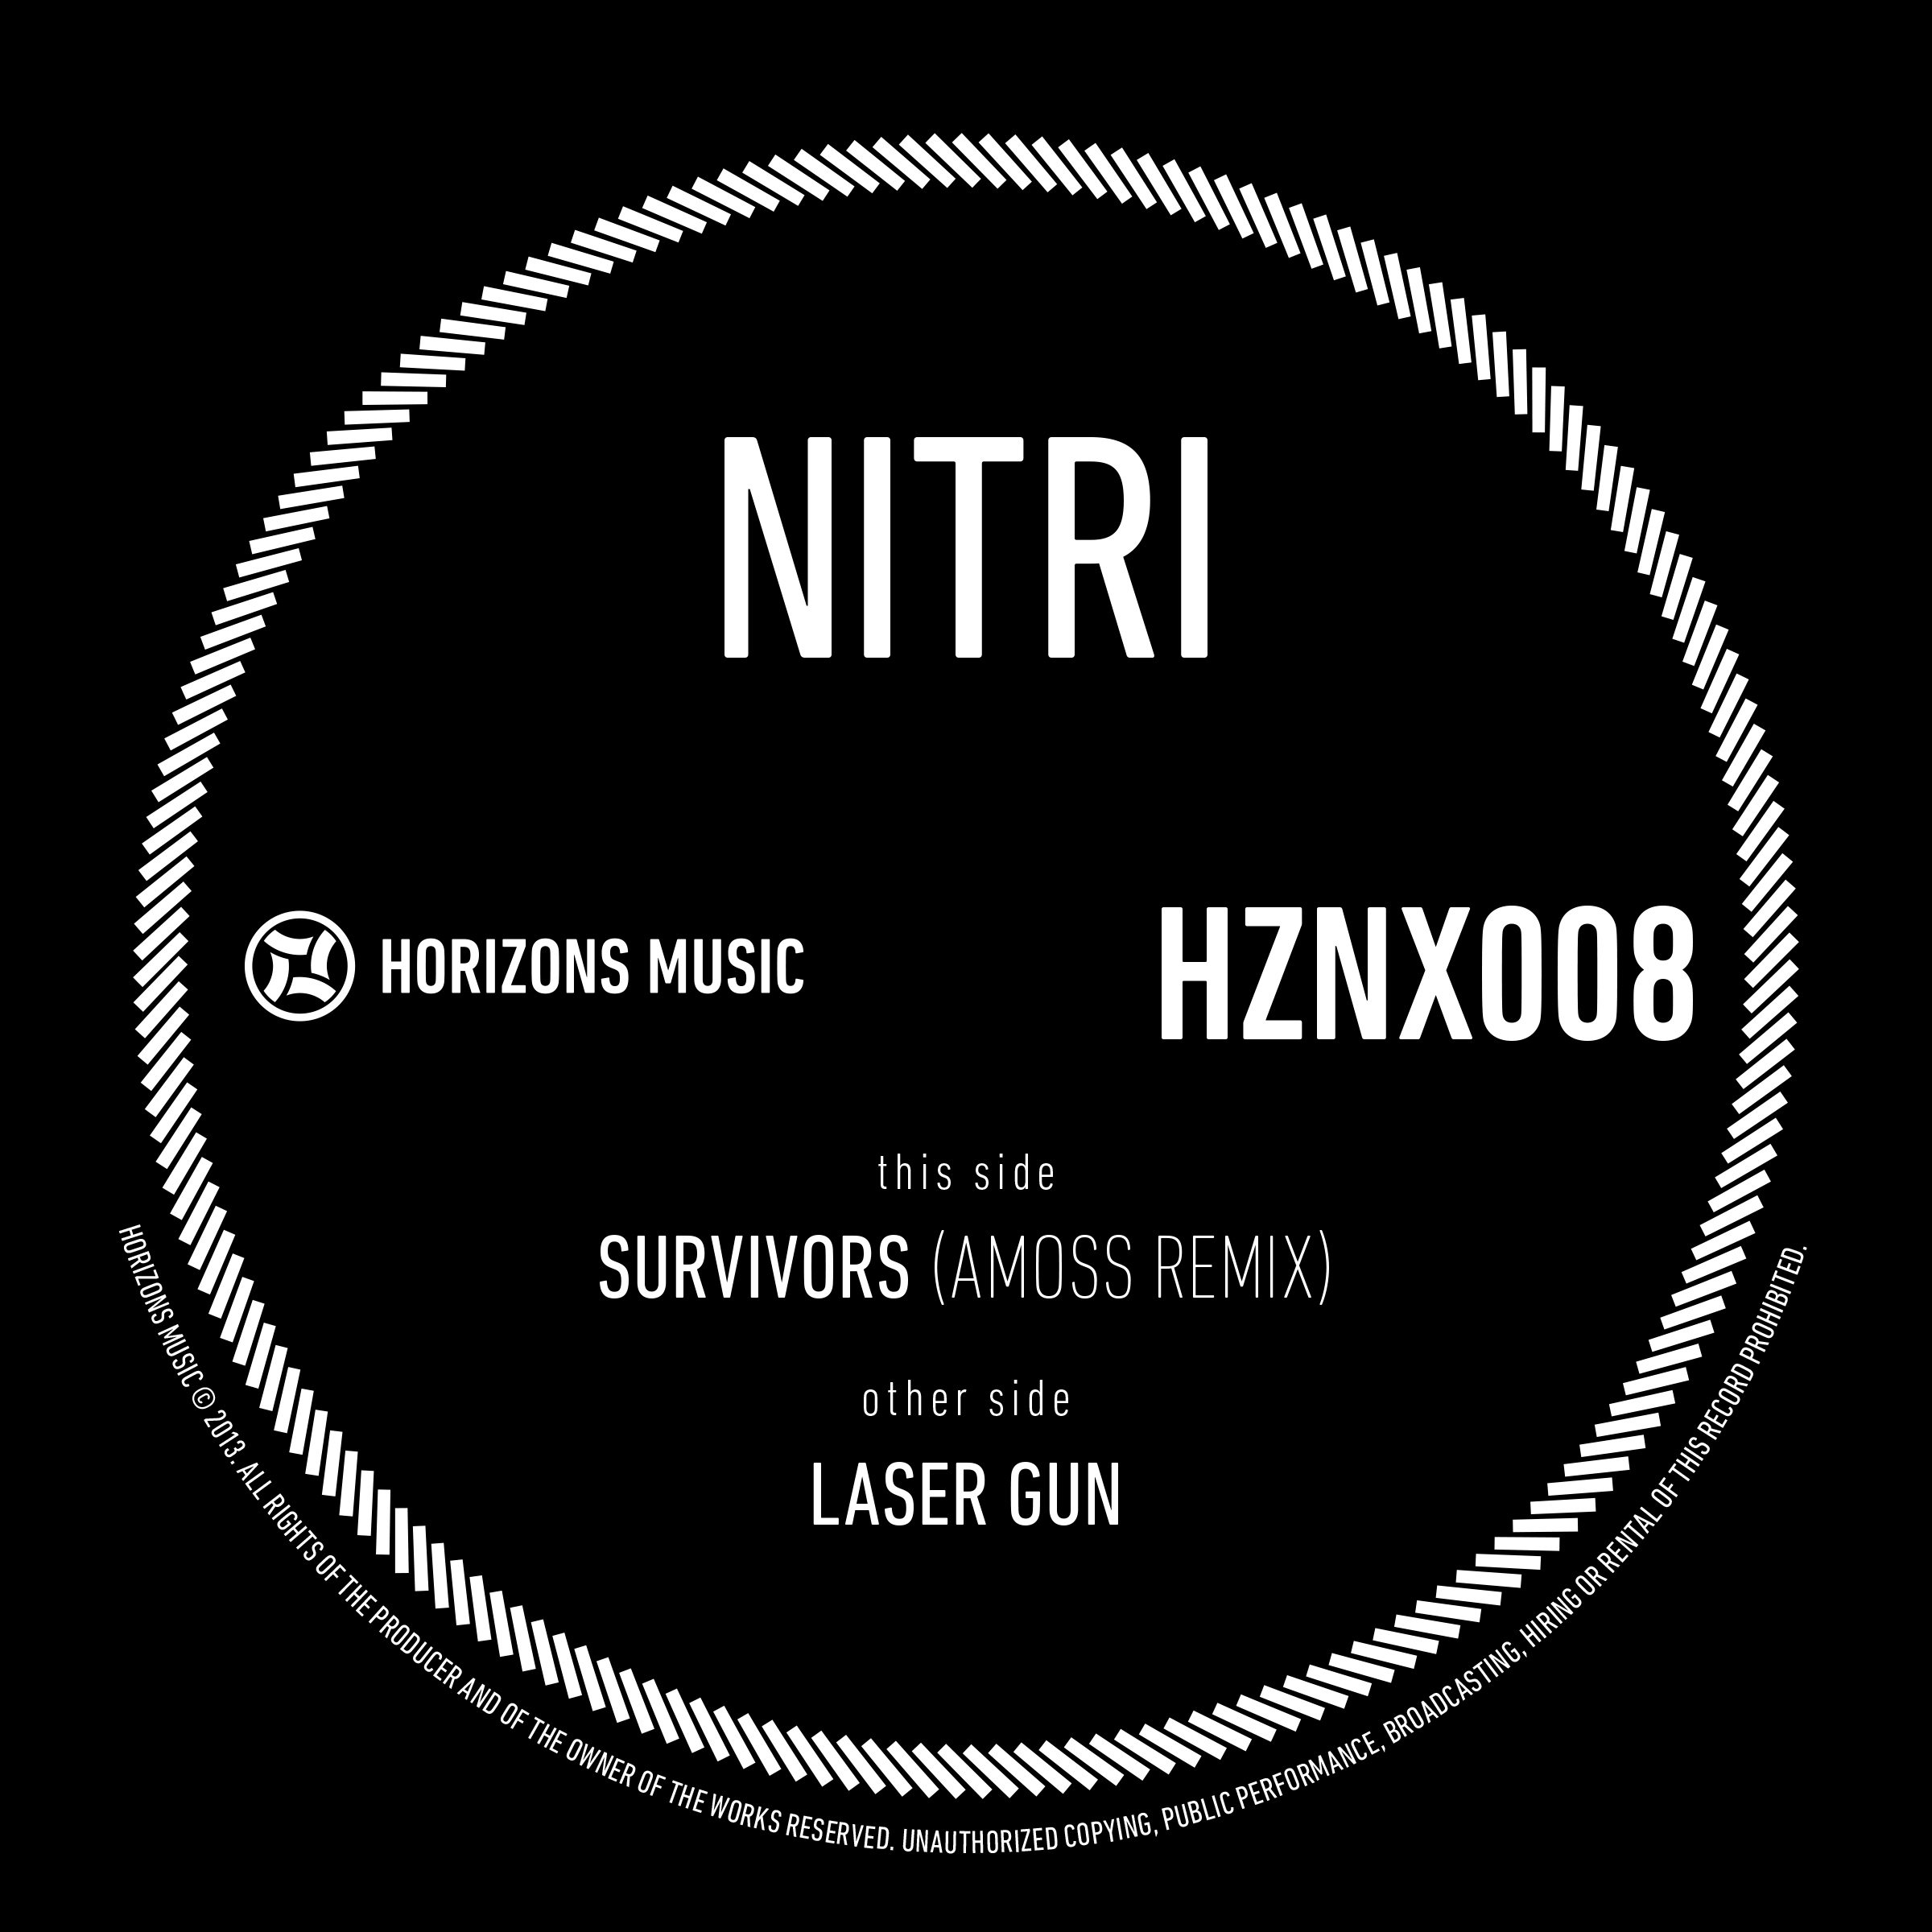 Nitri/SURVIVORS (AMOSS REMIX) 12""